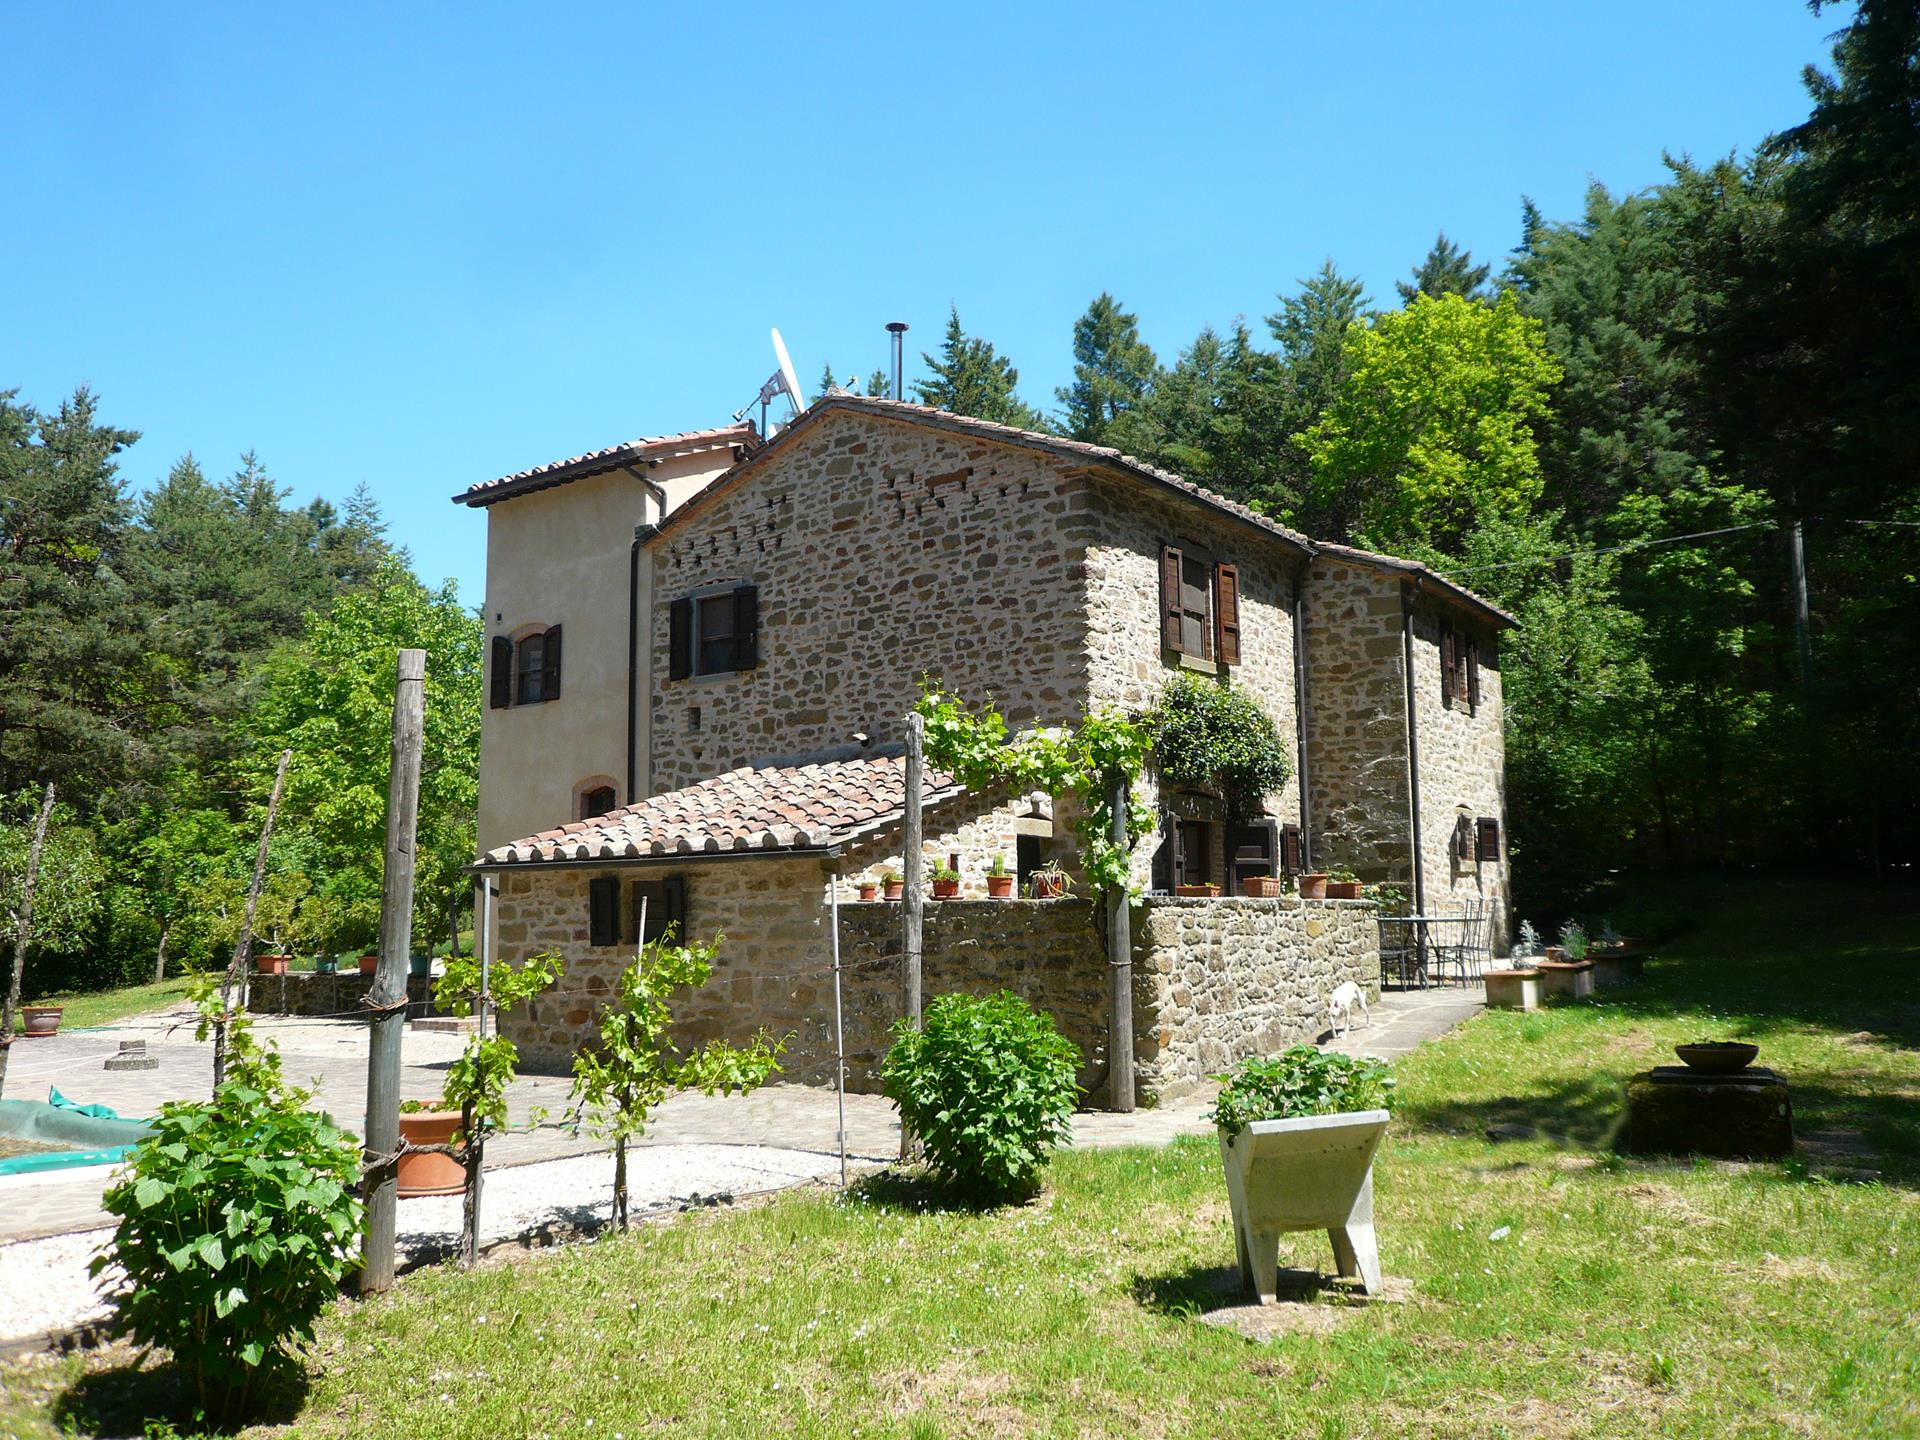 Italian Farmhouses For Sale 2 Bedroom Farmhouses And Country Villas For Sale In Casa